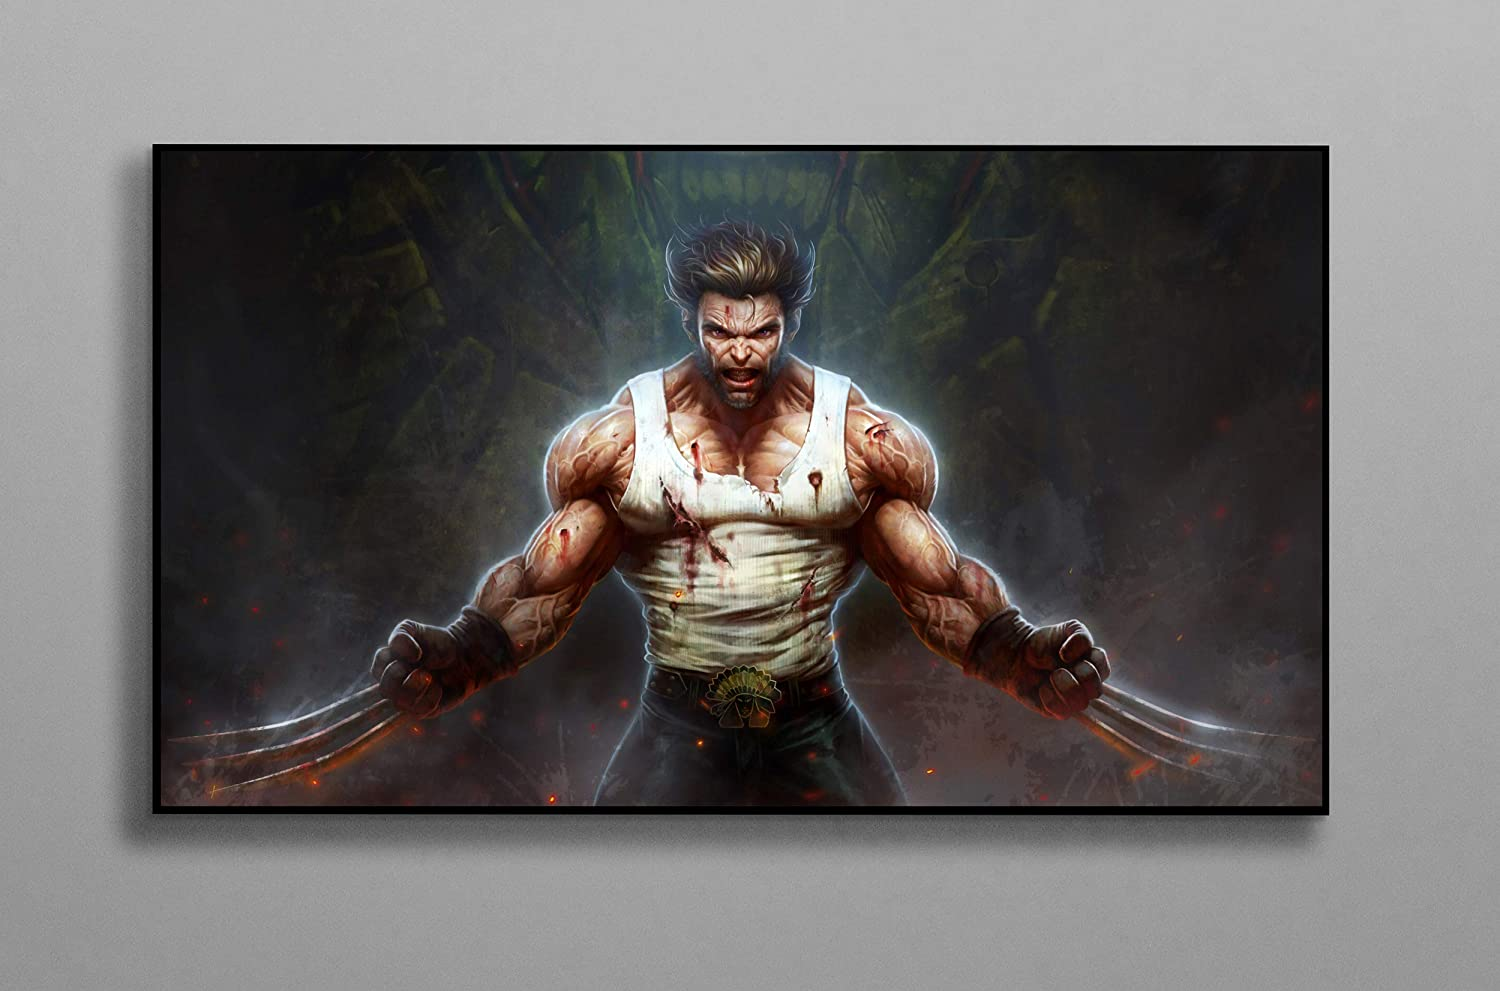 Marvel Comics Wolverine Poster Print Canvas Poster Wall Decor Art Wall Art Print Gift Poster Unframed Printing Size - 11